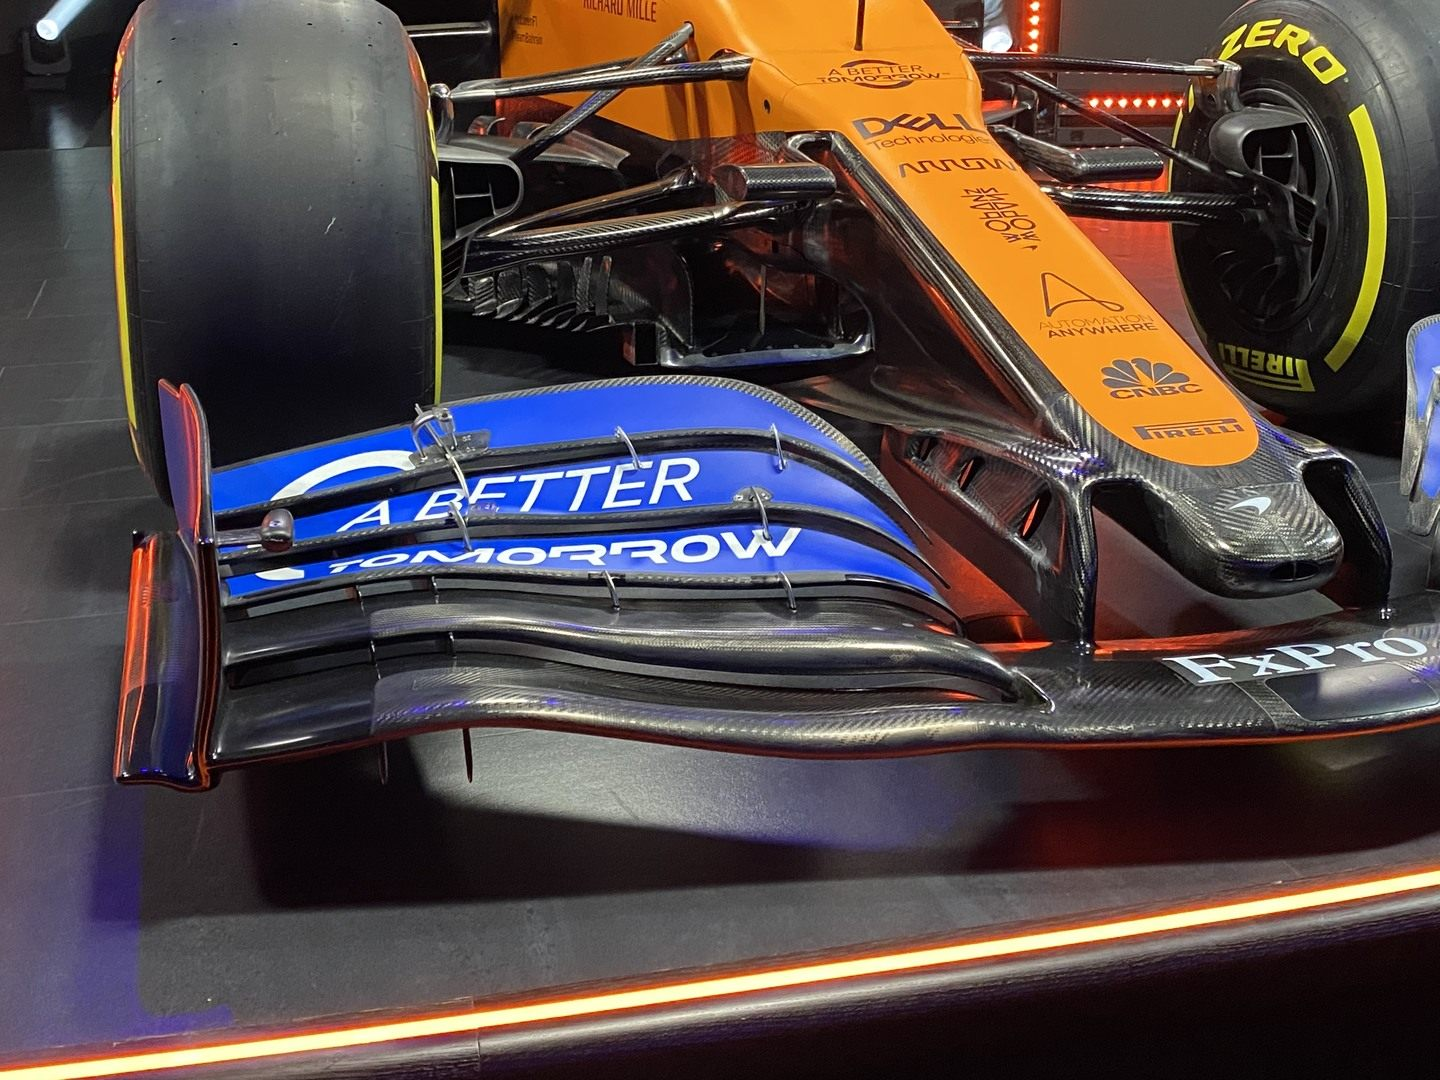 MCL35 © the-race.com